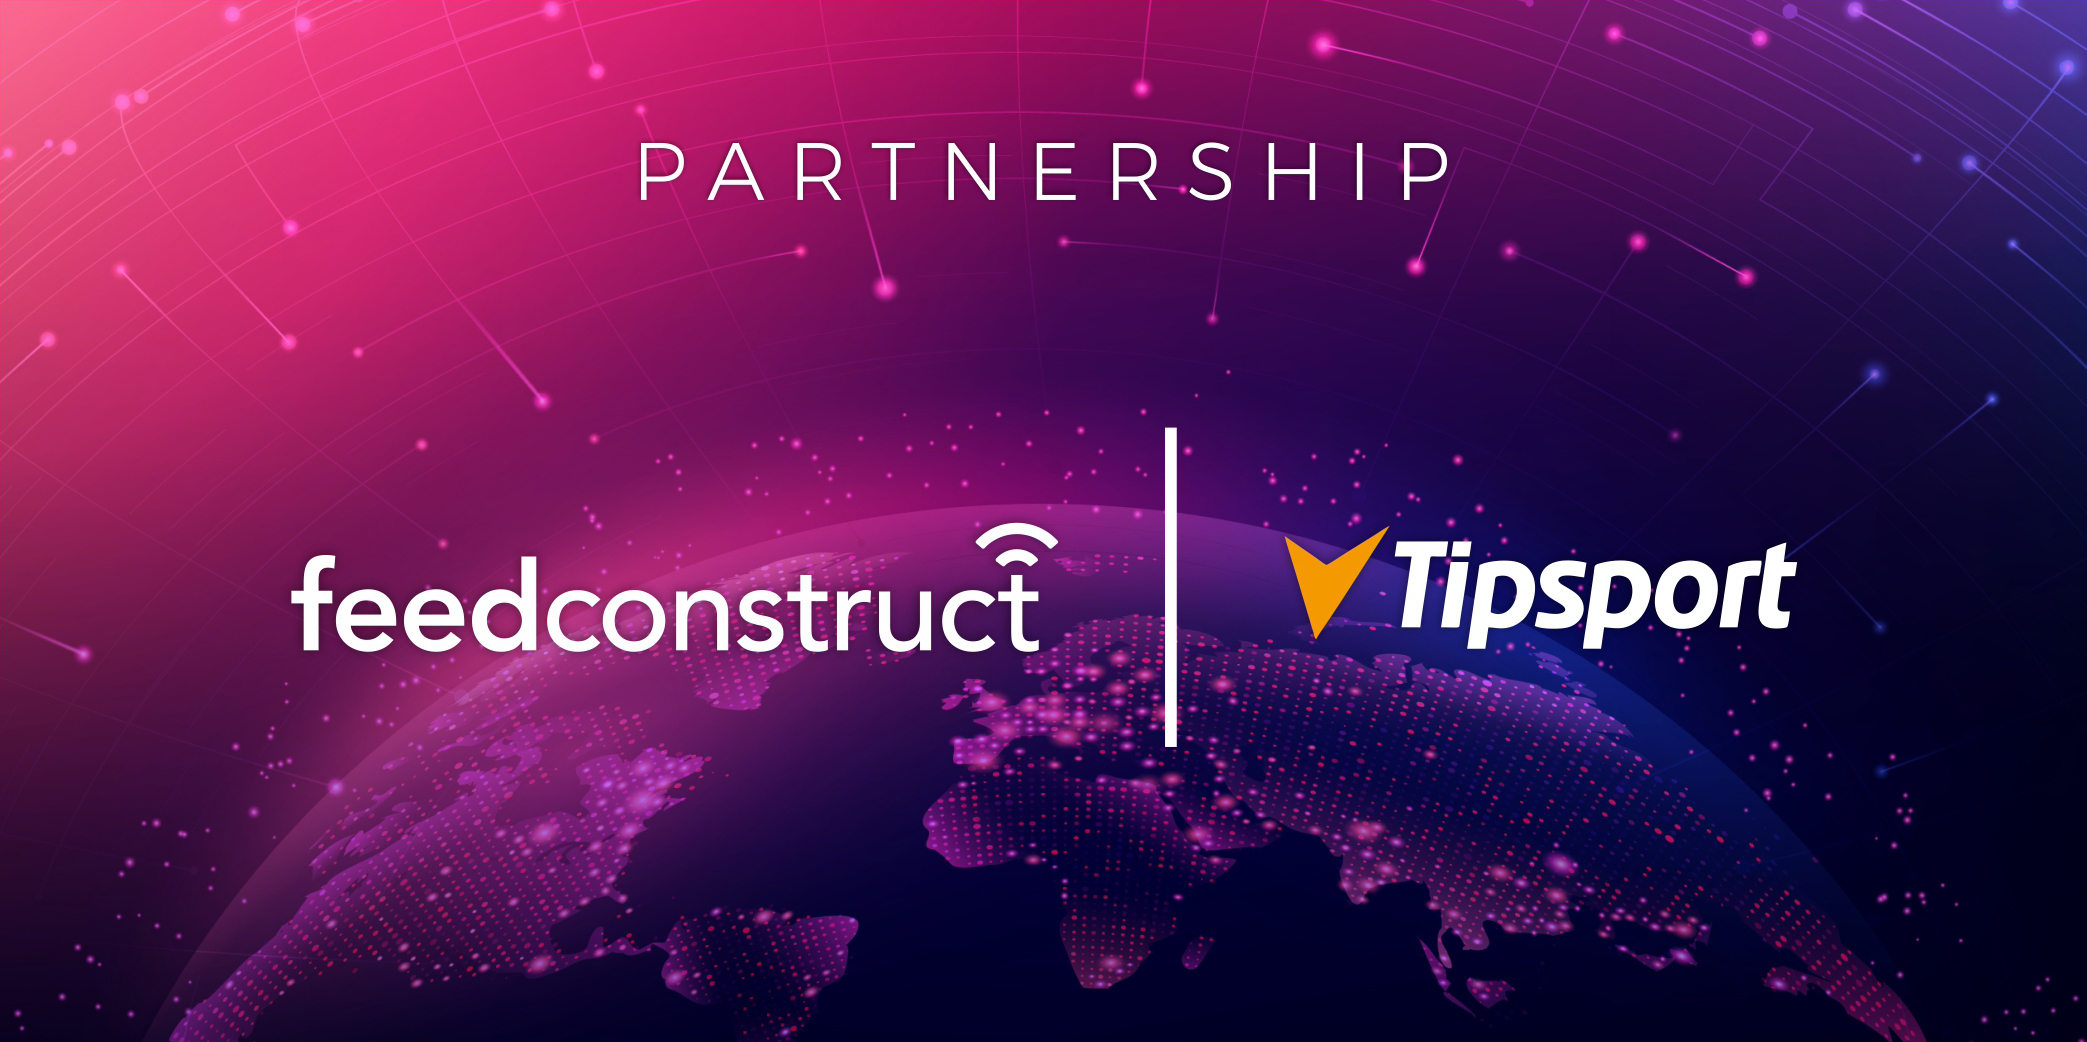 FeedConstruct is celebrating an extended partnership with Tipsport